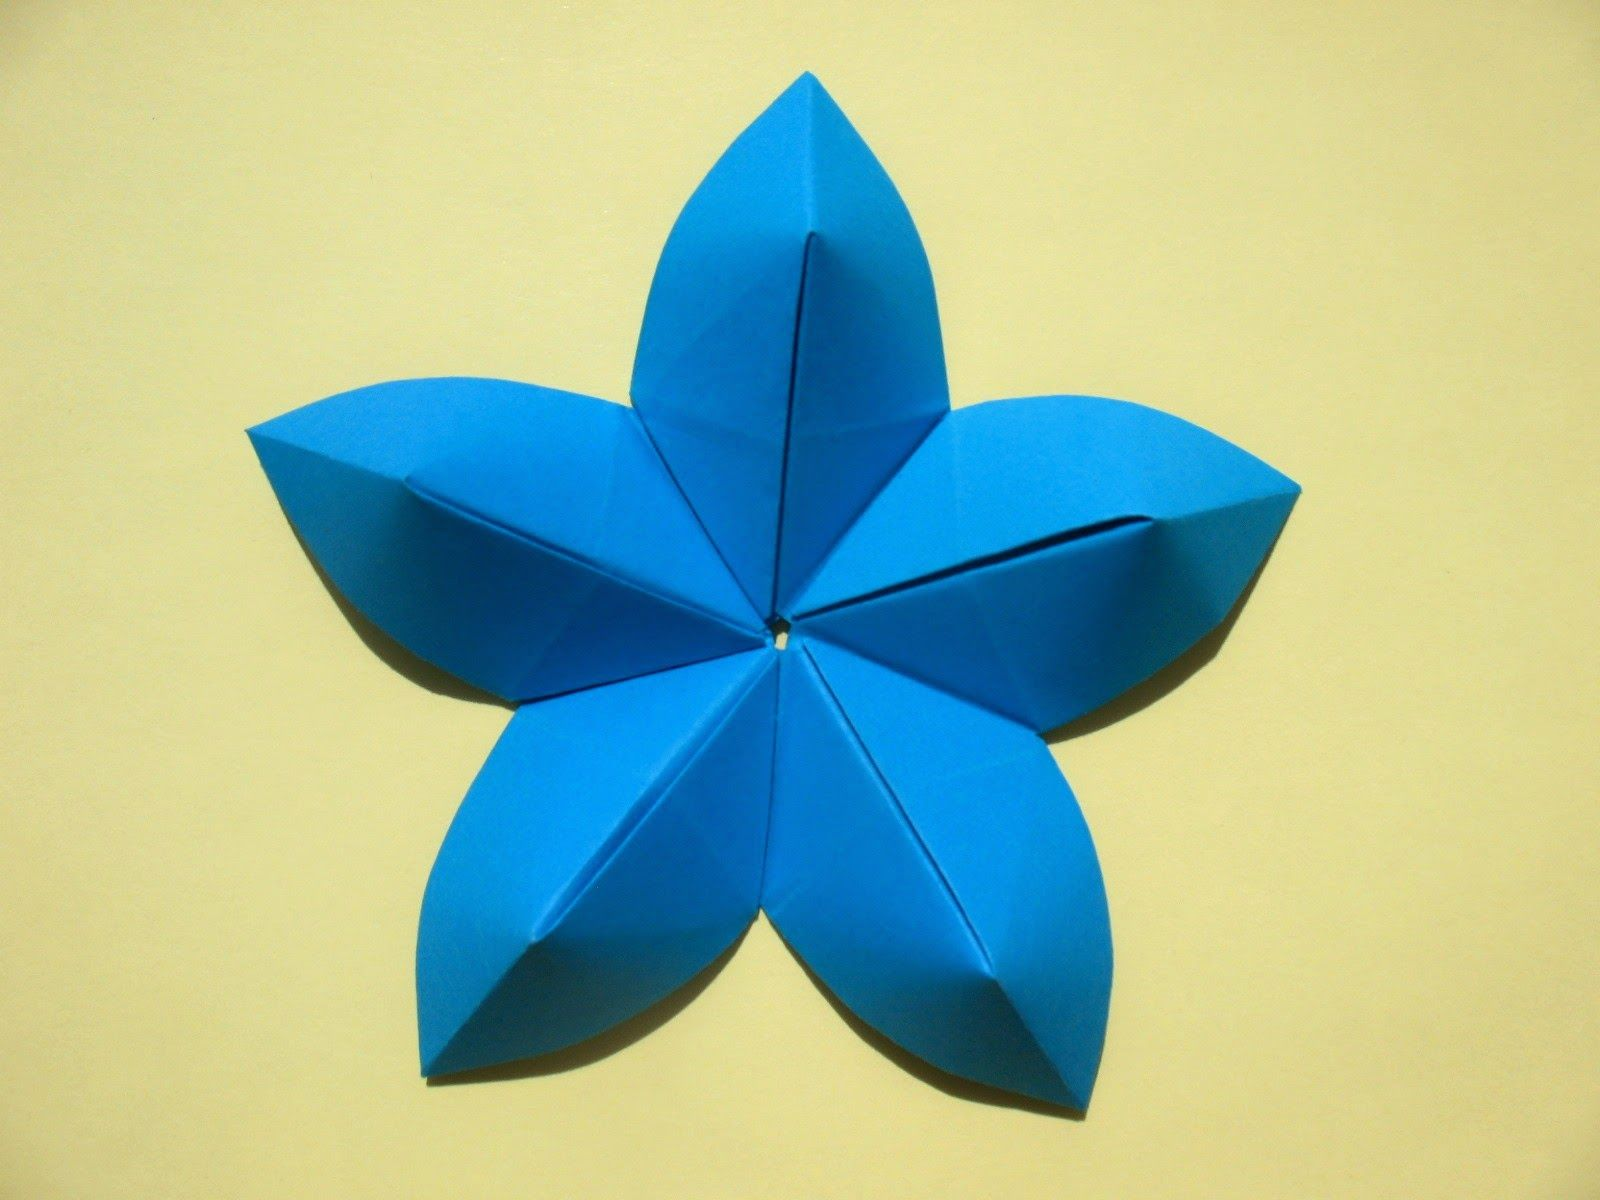 Origami art creativity new sakura origami origami flower you can obtain a clean result on this side a new personal origami model looks as the traditional sakura flowerthe same proporti mightylinksfo